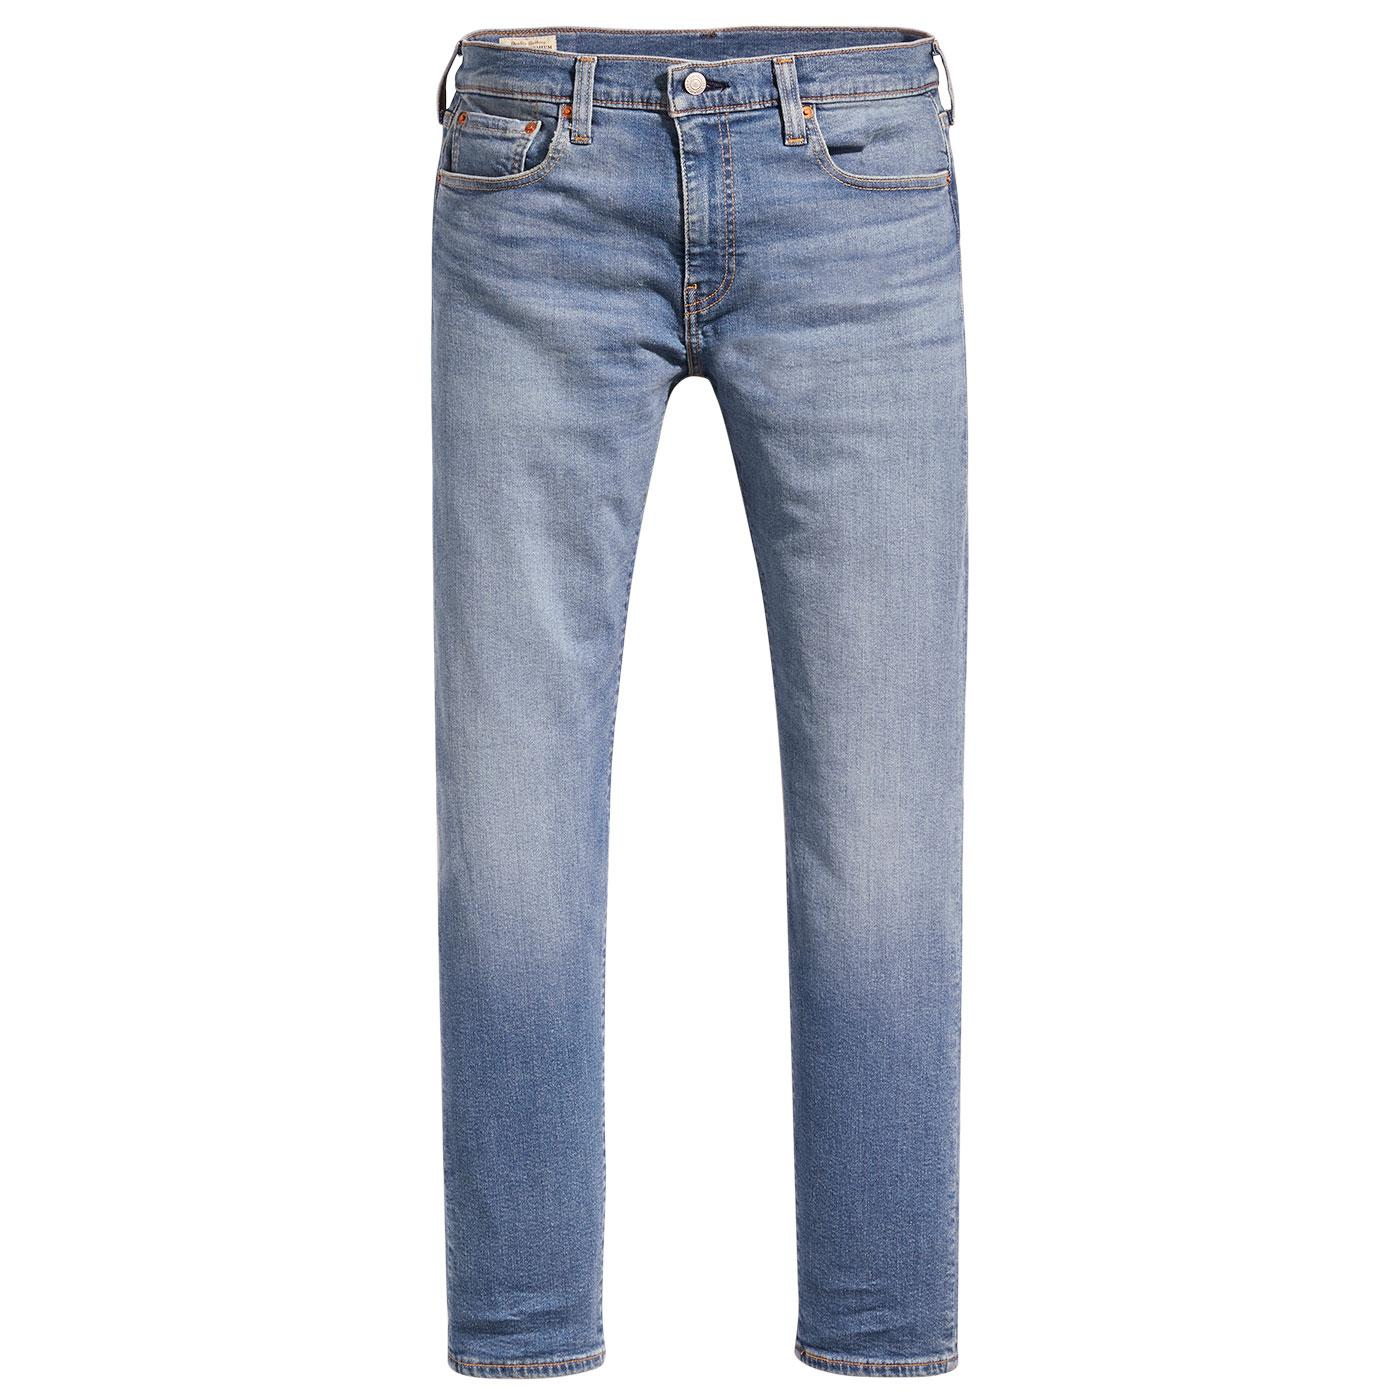 LEVI'S 502 Regular Taper Mod Jeans Cedar Light